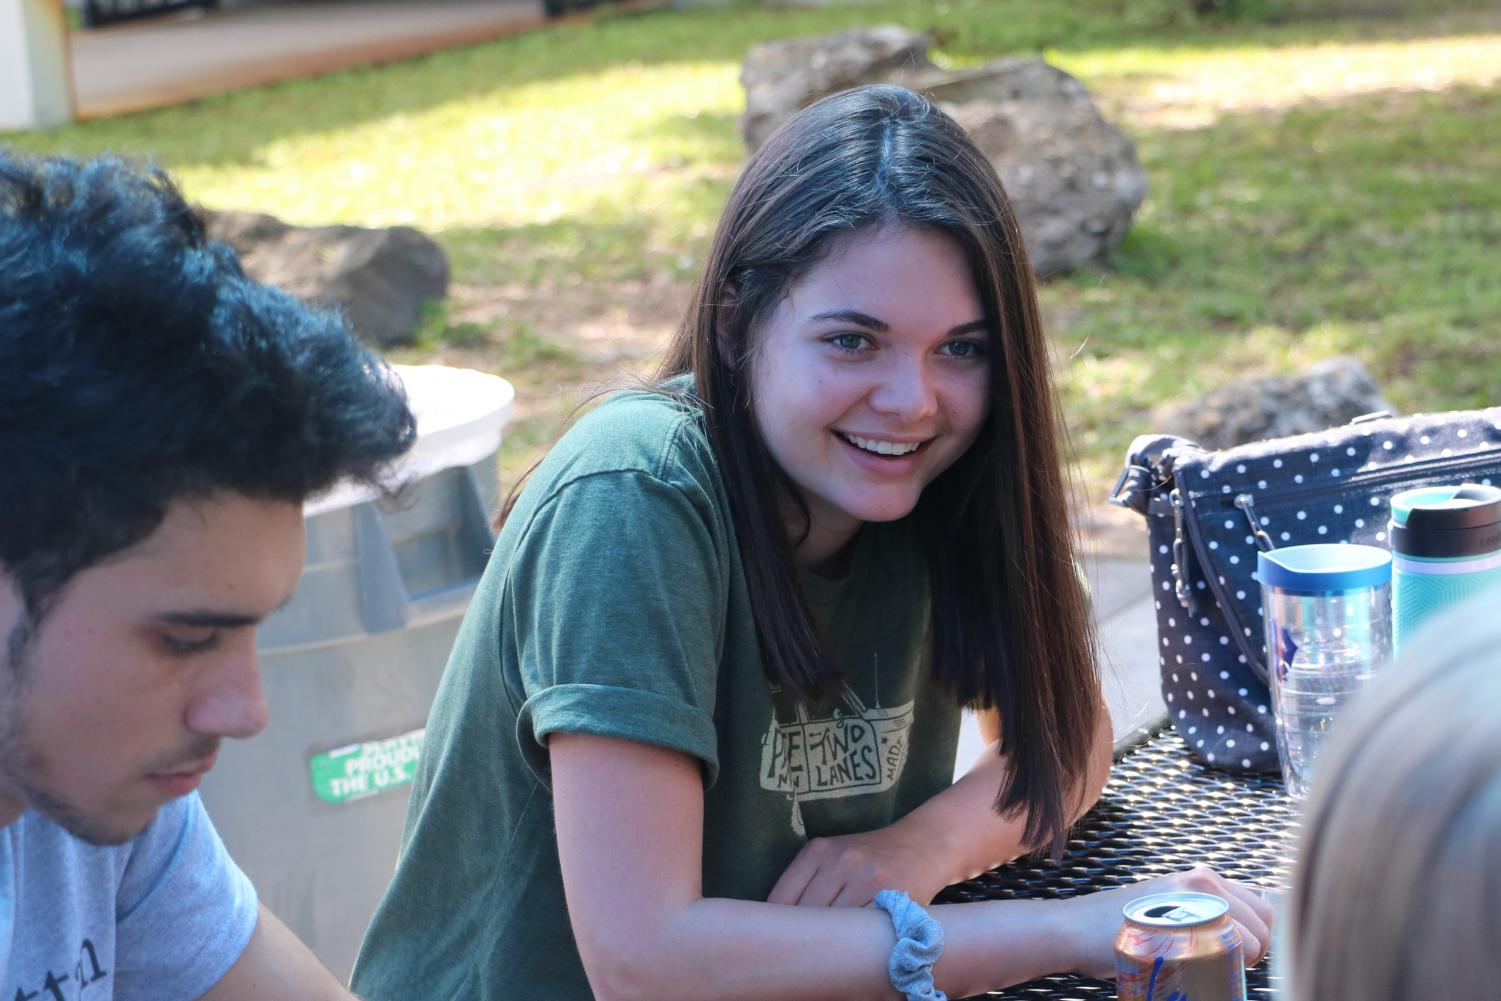 Lane Johansen ('18), recipient of Washington and Lee's Johnson Scholarship, laughs with her friends during lunch.